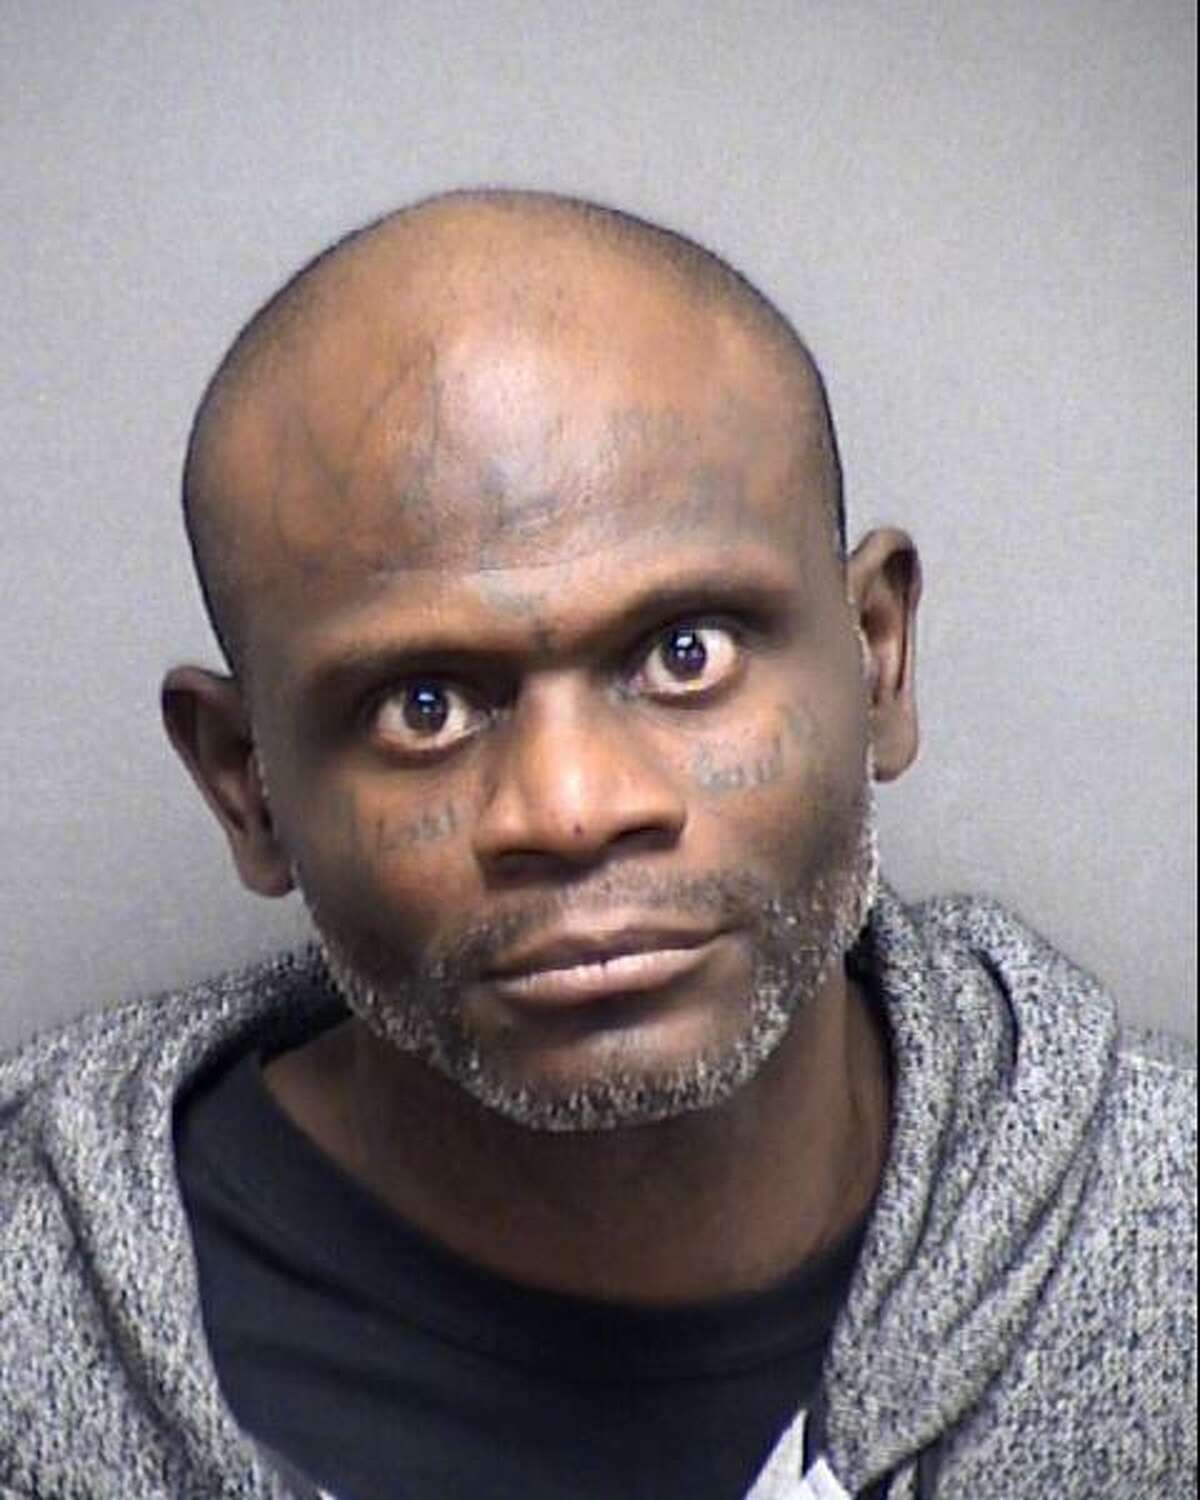 Clyde Poindexter is accused of murder in the death of Michael Lane on Nov. 9. Poindexter was indicted by a Bexar County grand jury.